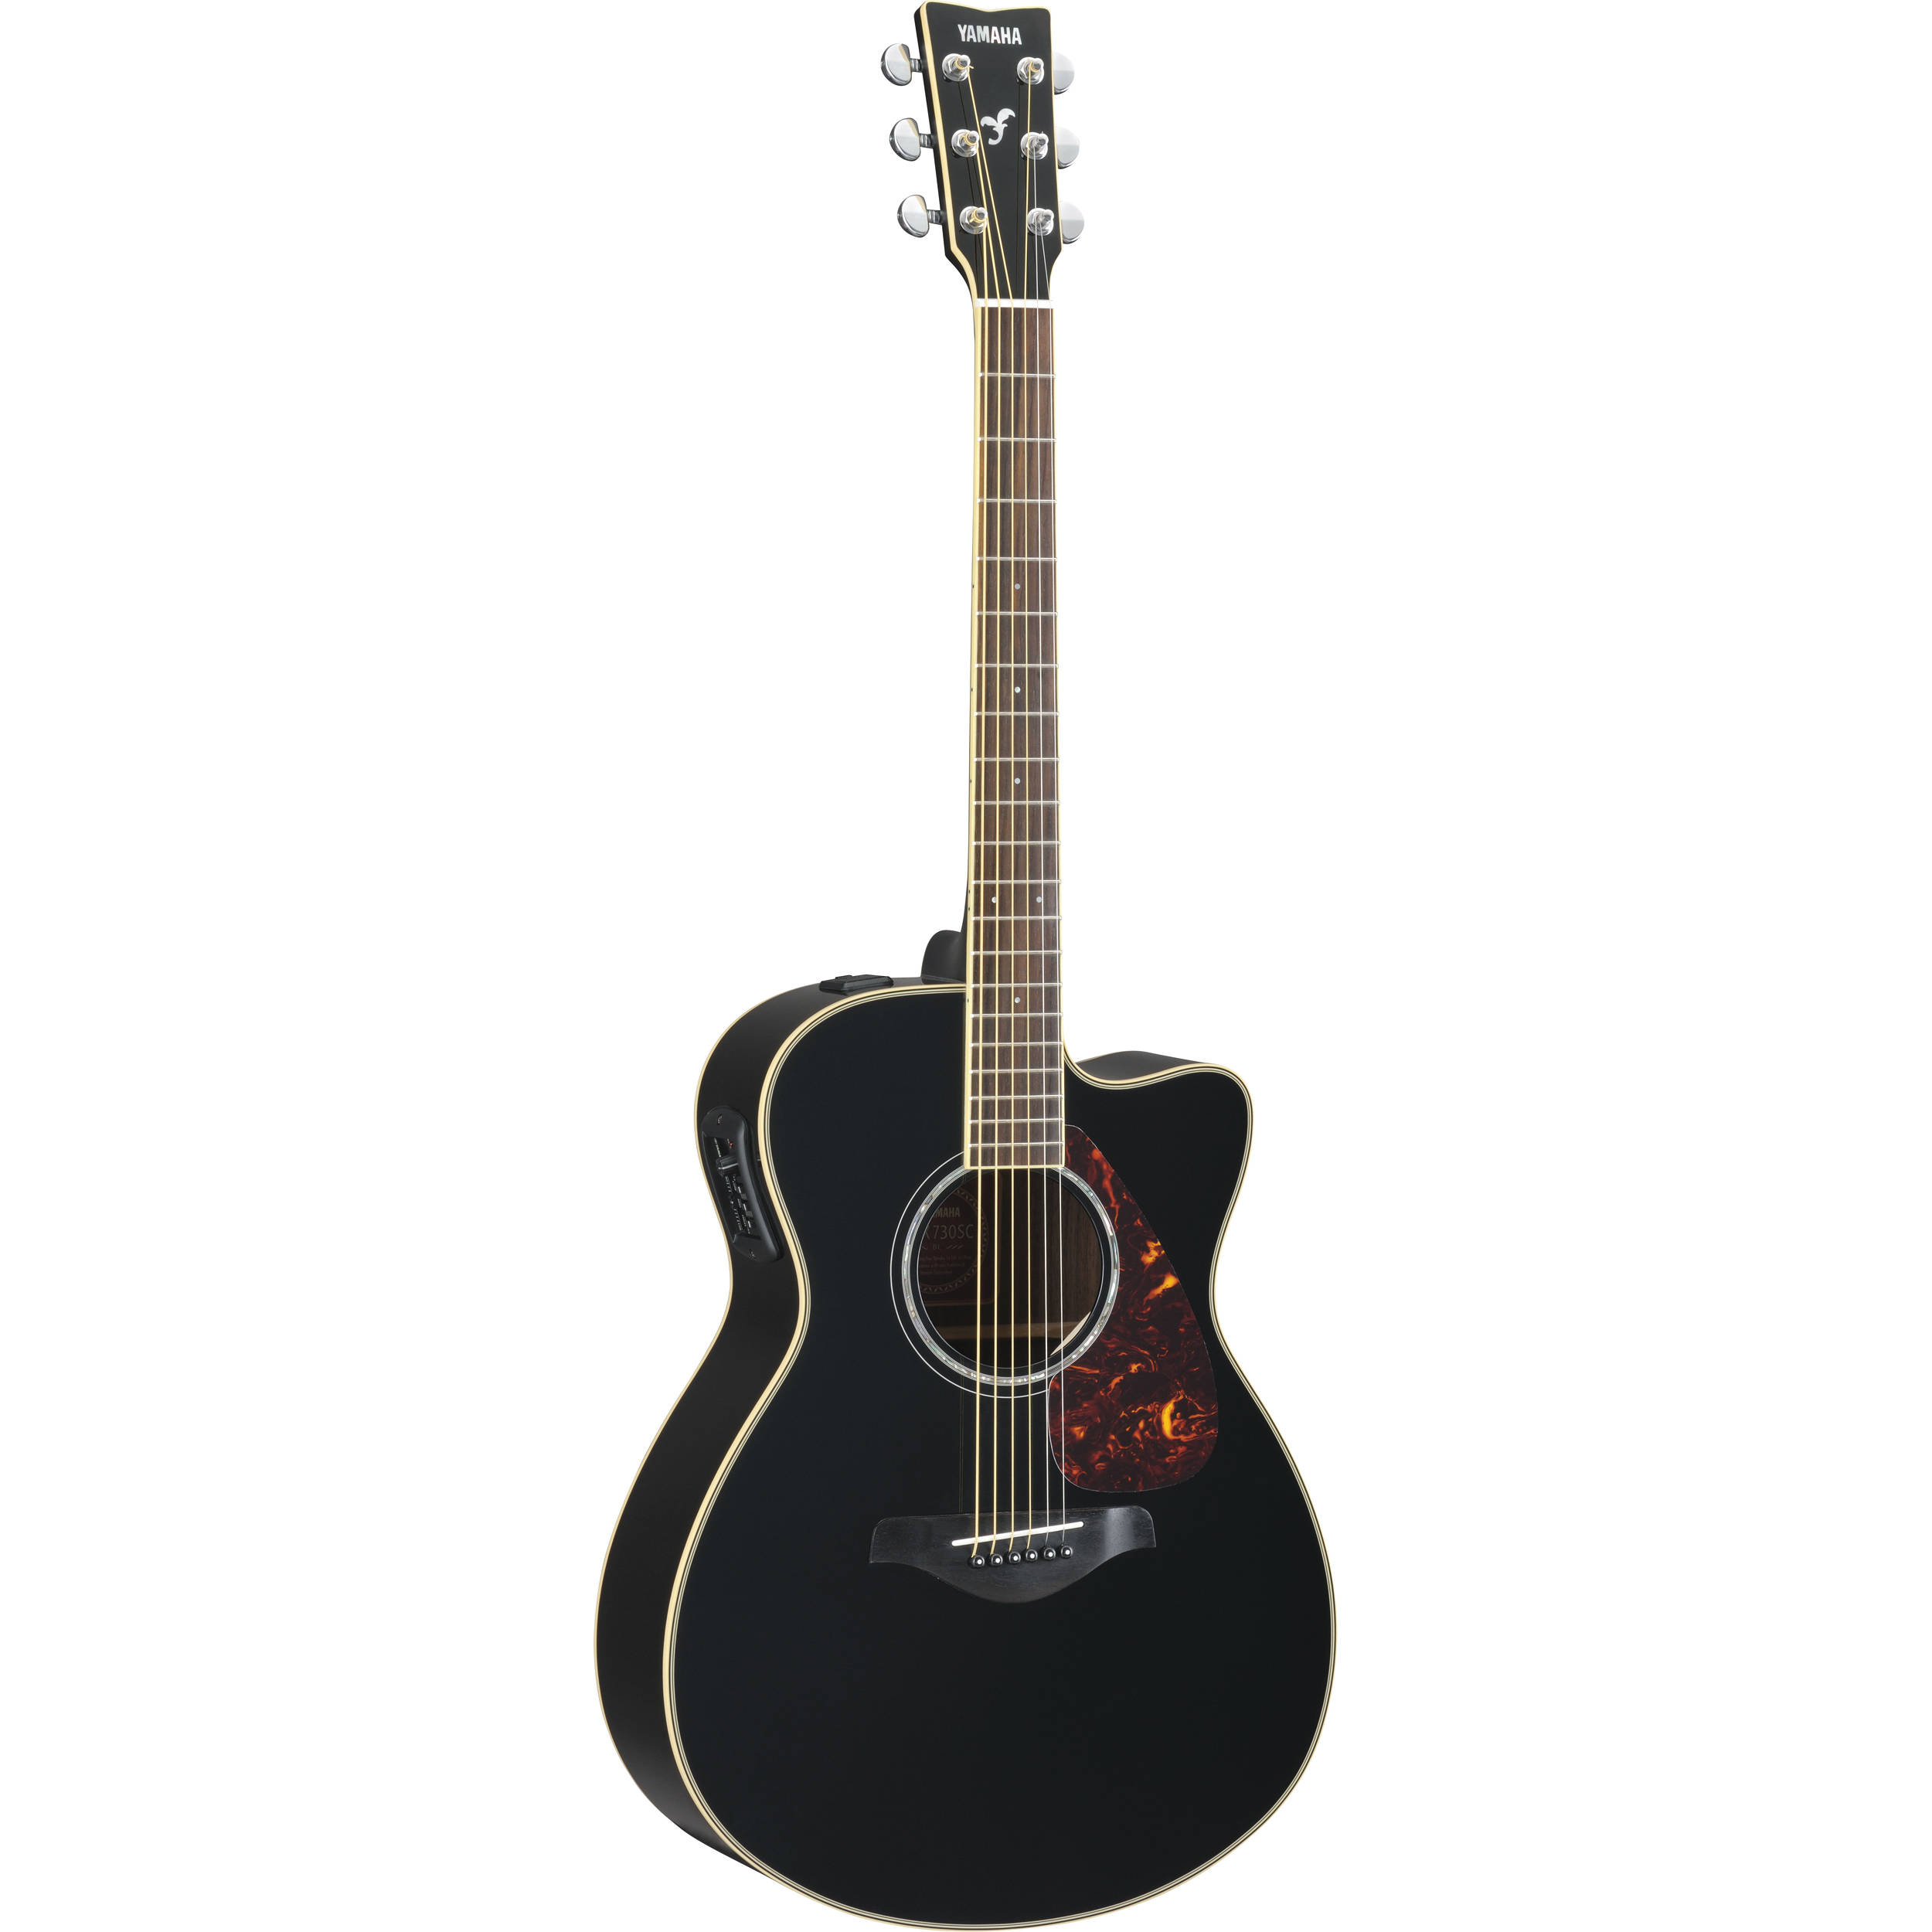 yamaha fsx730sc small body acoustic electric guitar fsx730sc bl. Black Bedroom Furniture Sets. Home Design Ideas